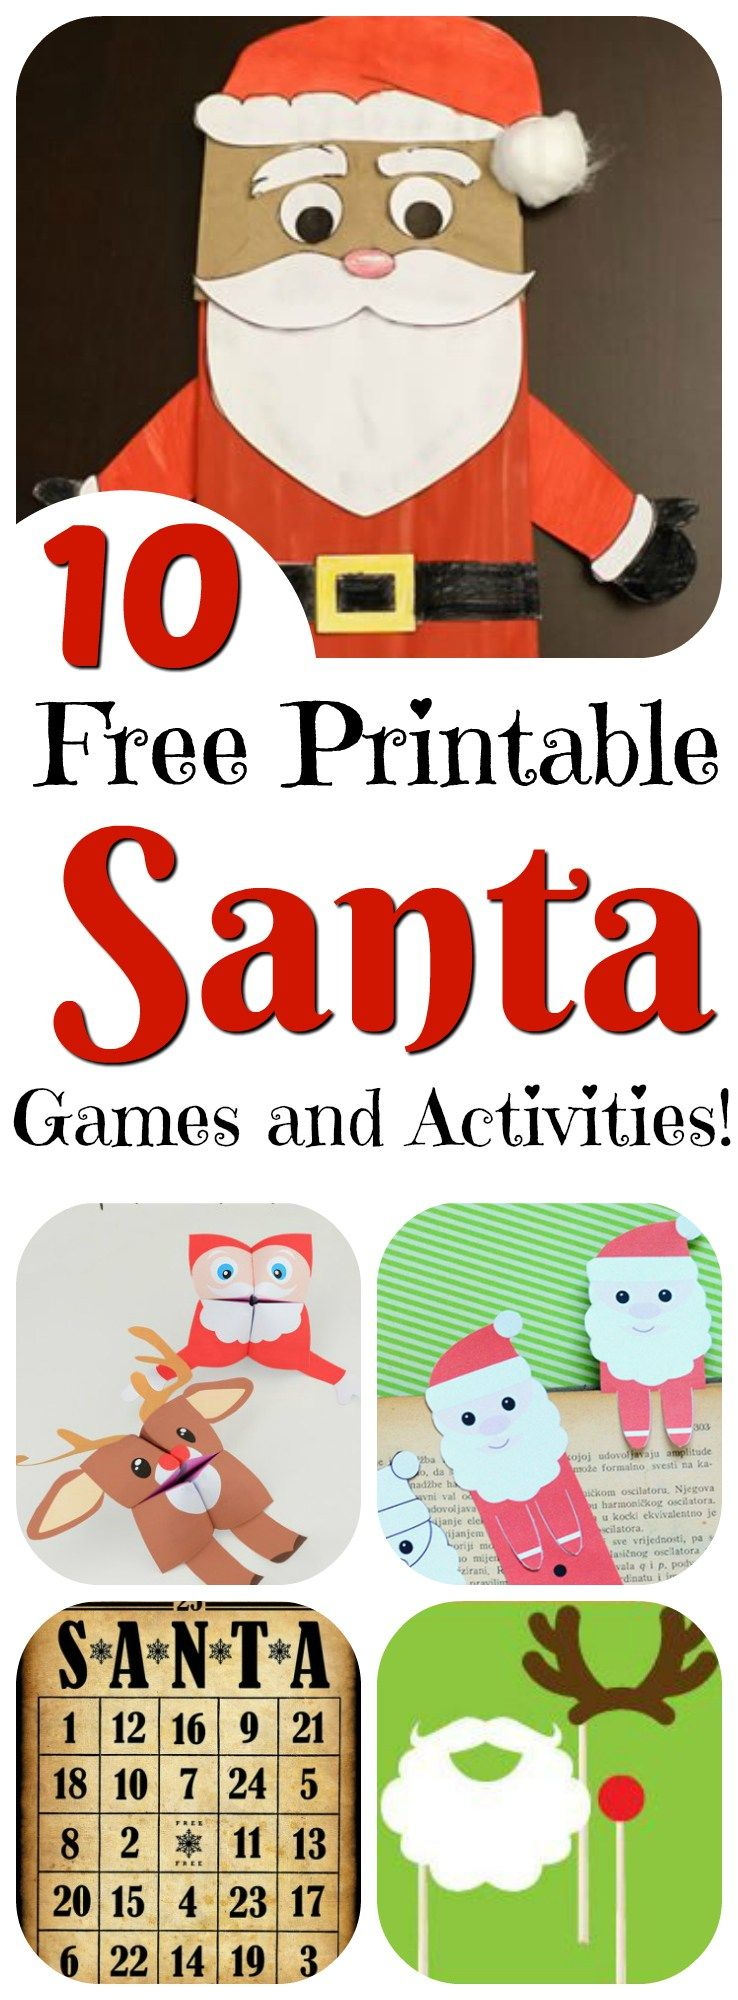 Printable Santa  Fun Games  Activities  Santa Crafts Santa And